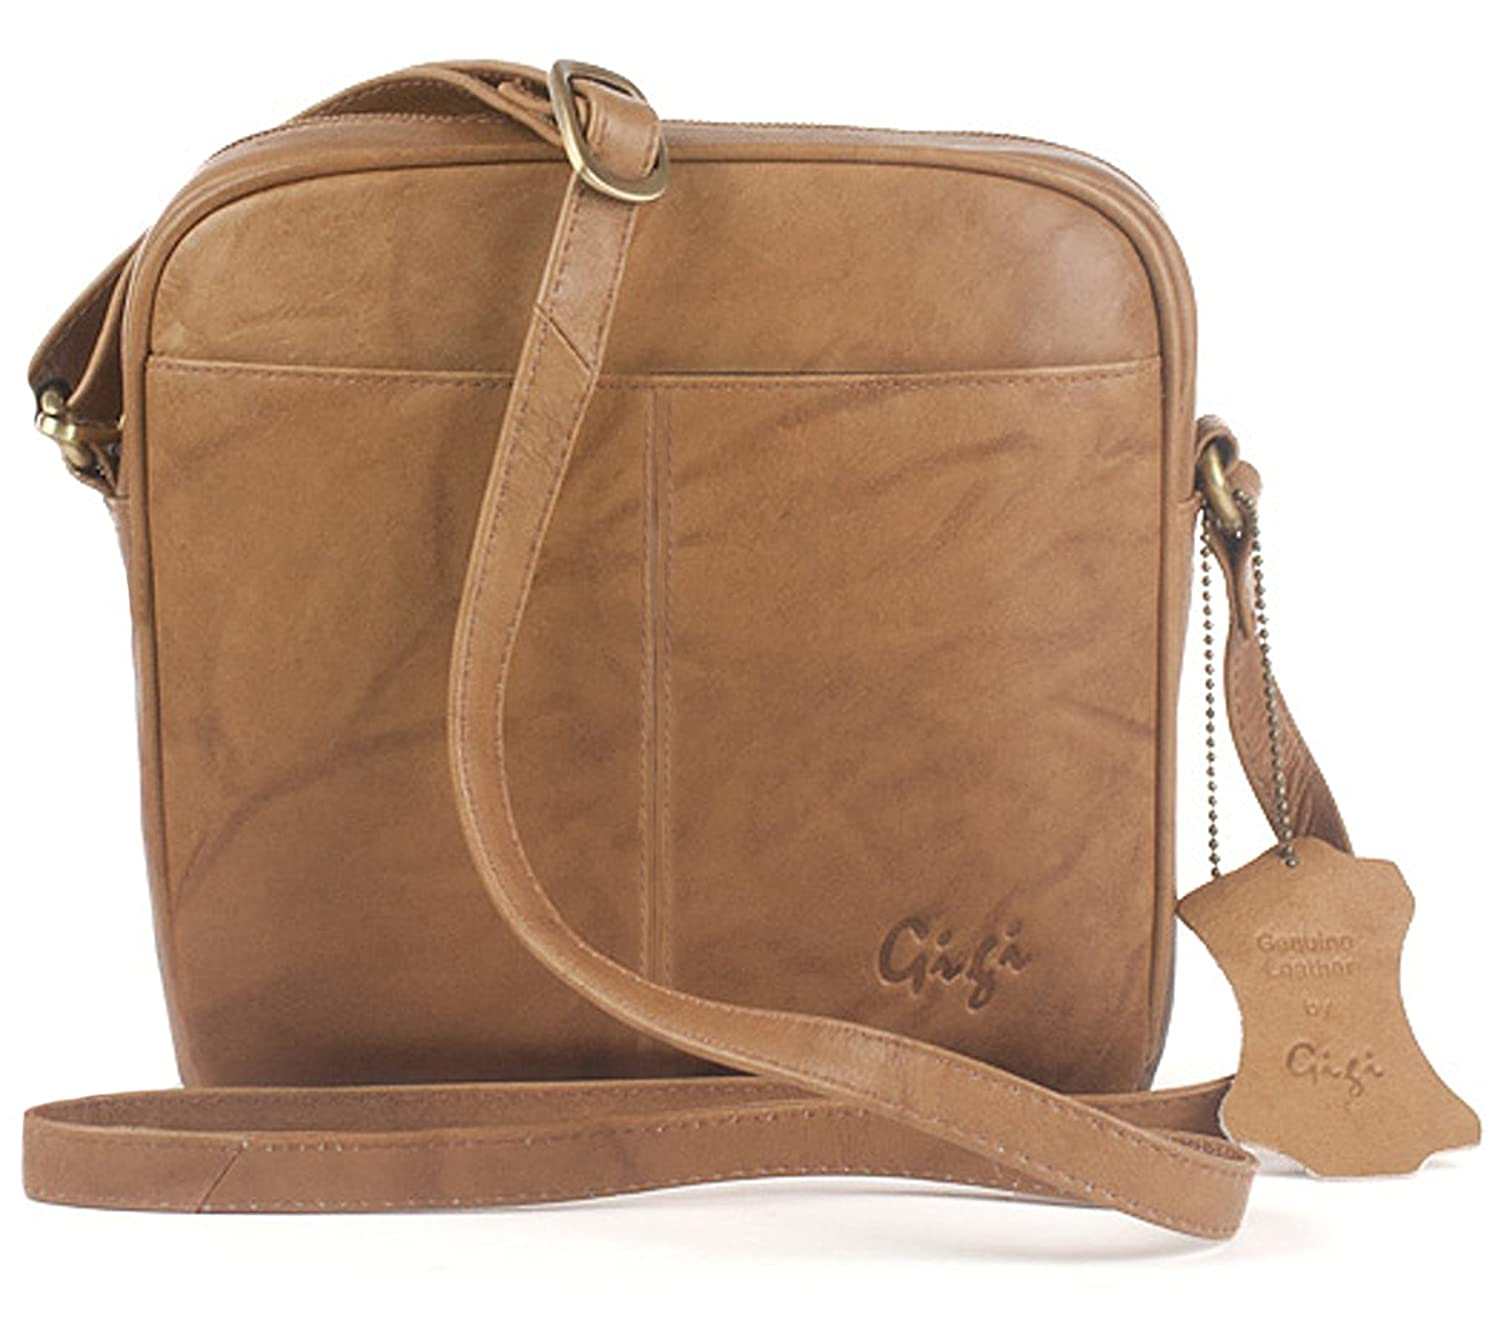 21caf4d467 Gigi - Women s Small Leather Cross Body Handbag - Shoulder Bag with Long  Adjustable Strap - OTHELLO 22-29 - Antique Honey  Amazon.co.uk  Shoes   Bags